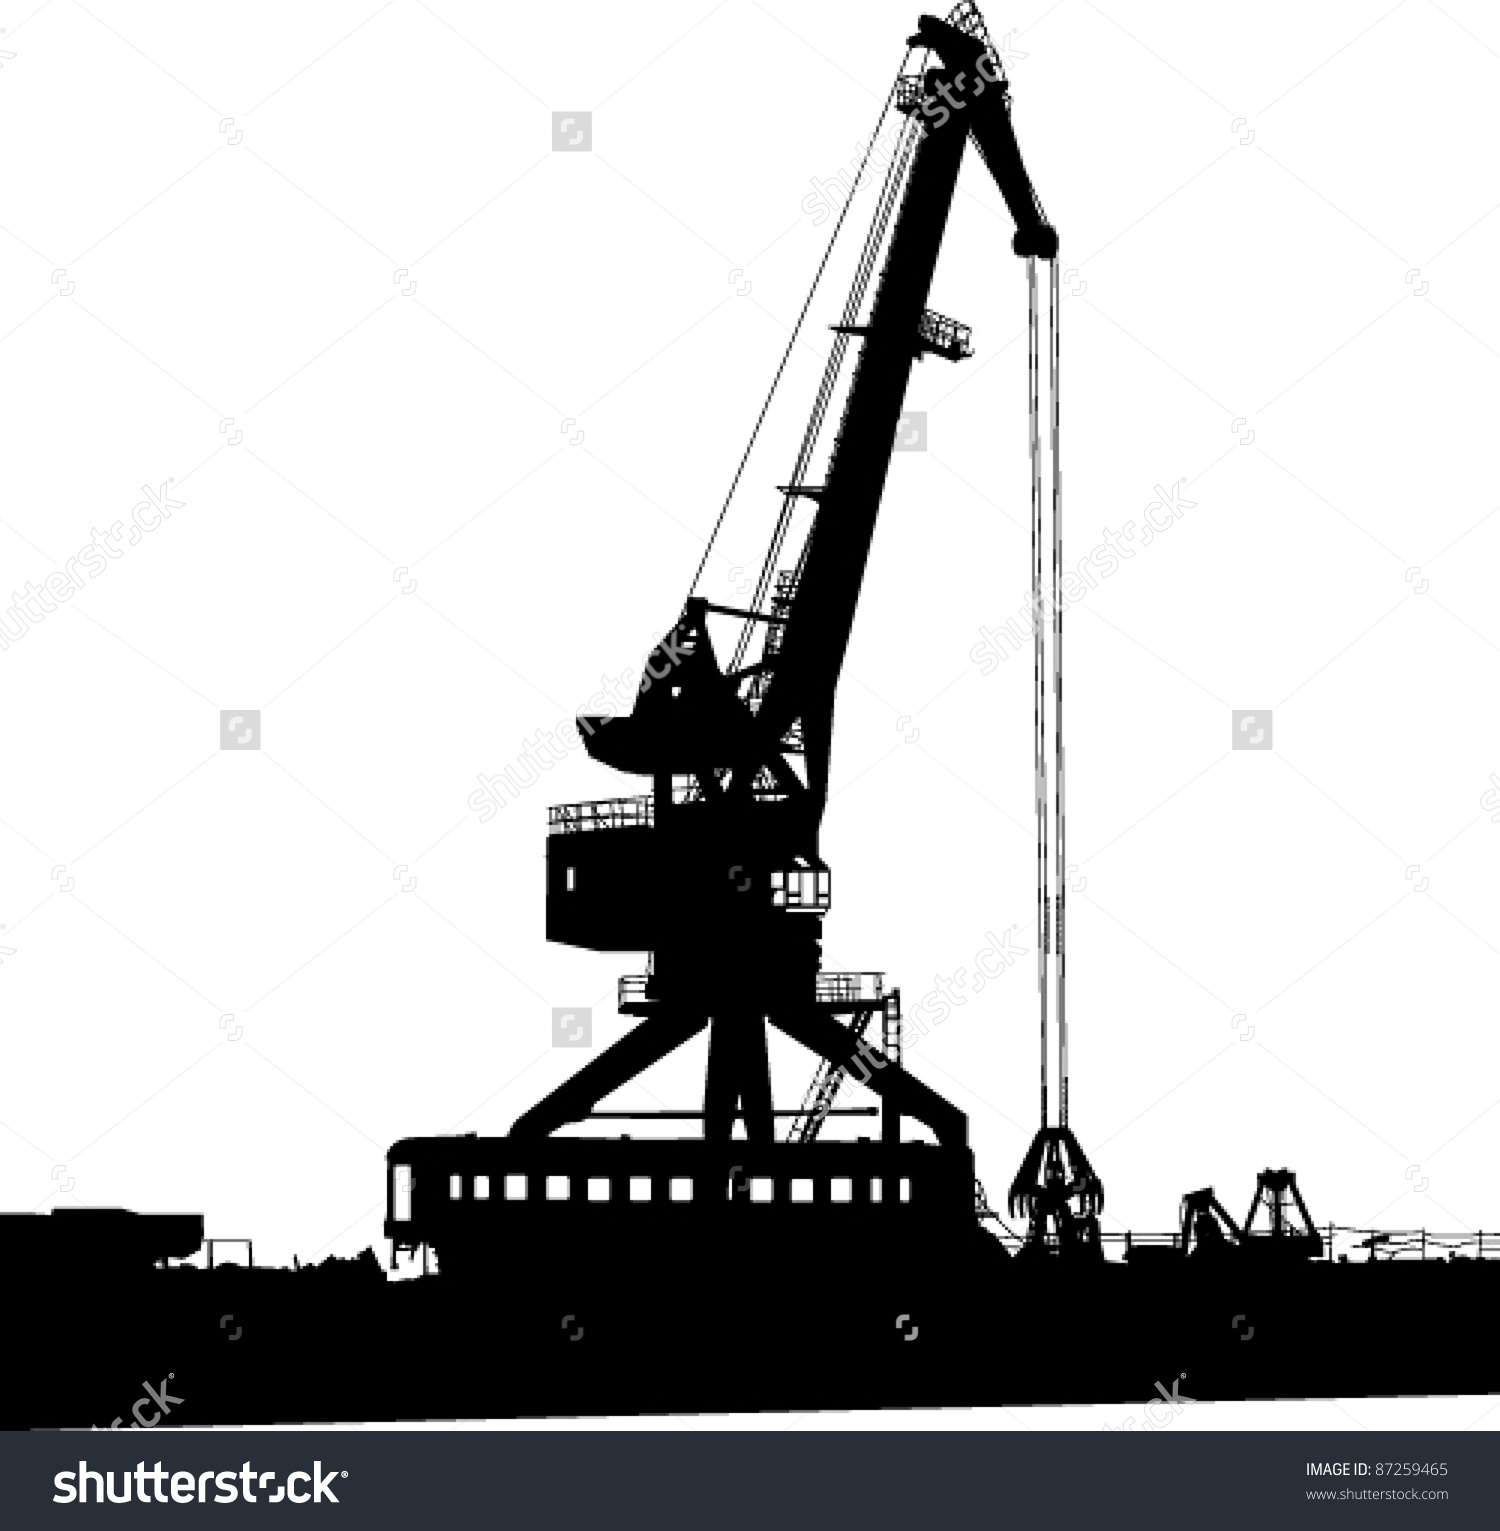 Silhouette Port Crane Stock Vector 87259465.